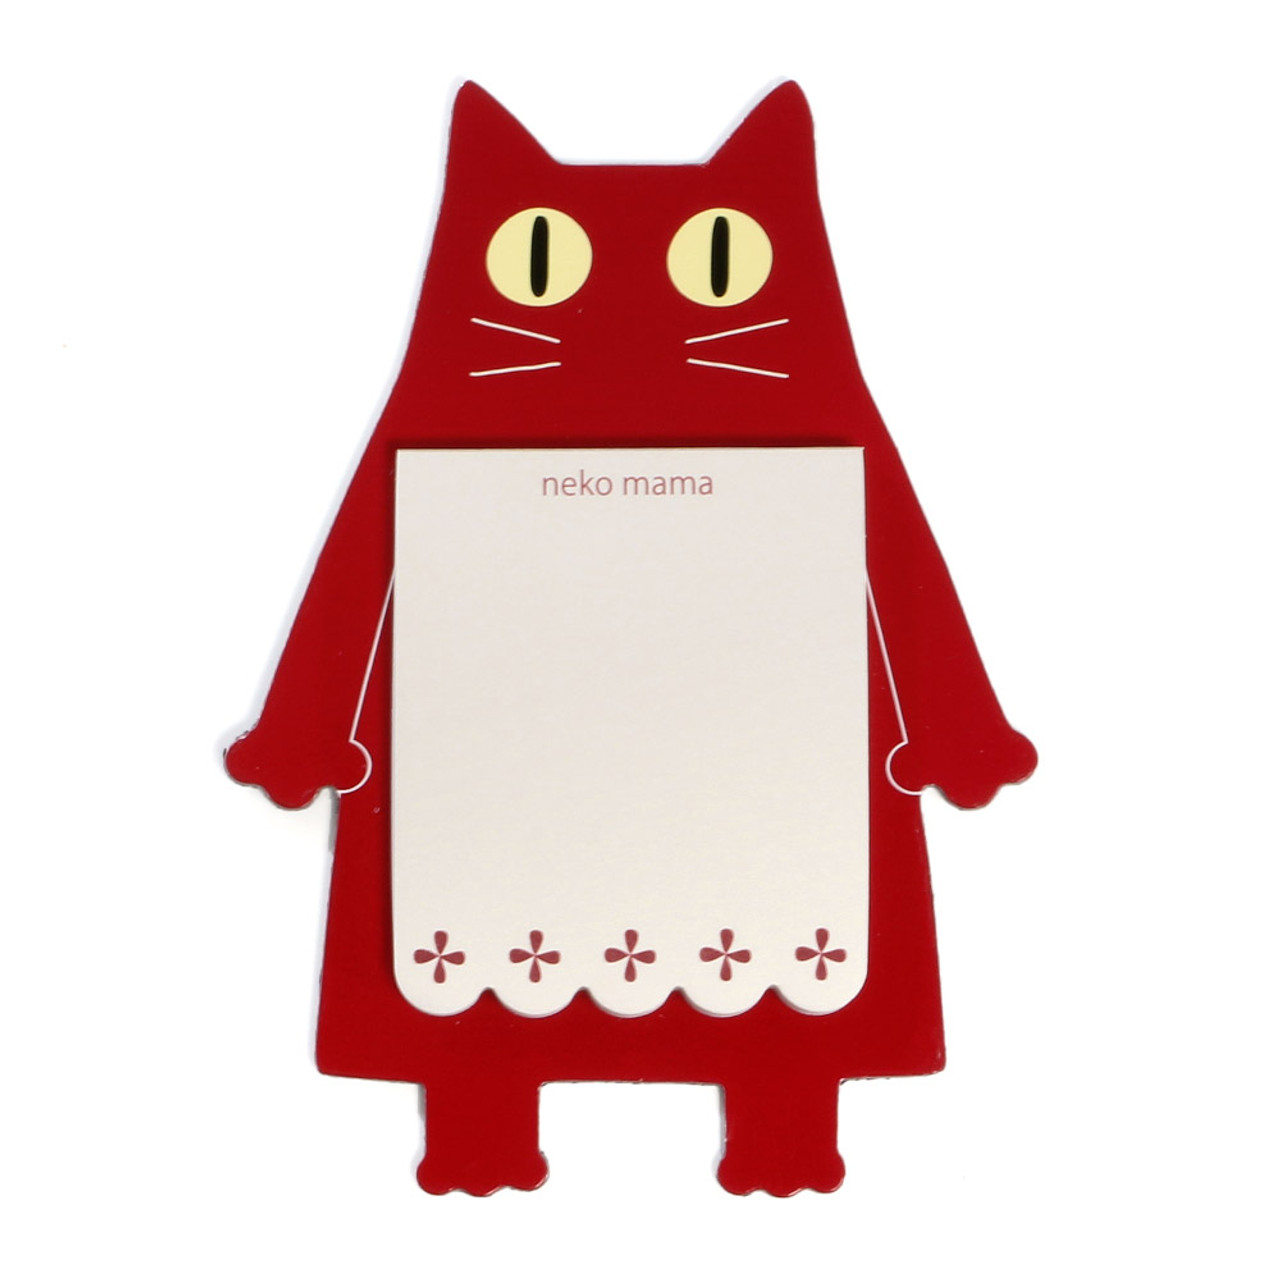 Noafamily Nekomama Red Cat Magnet Memo Pad 48 sheets ( Front View )